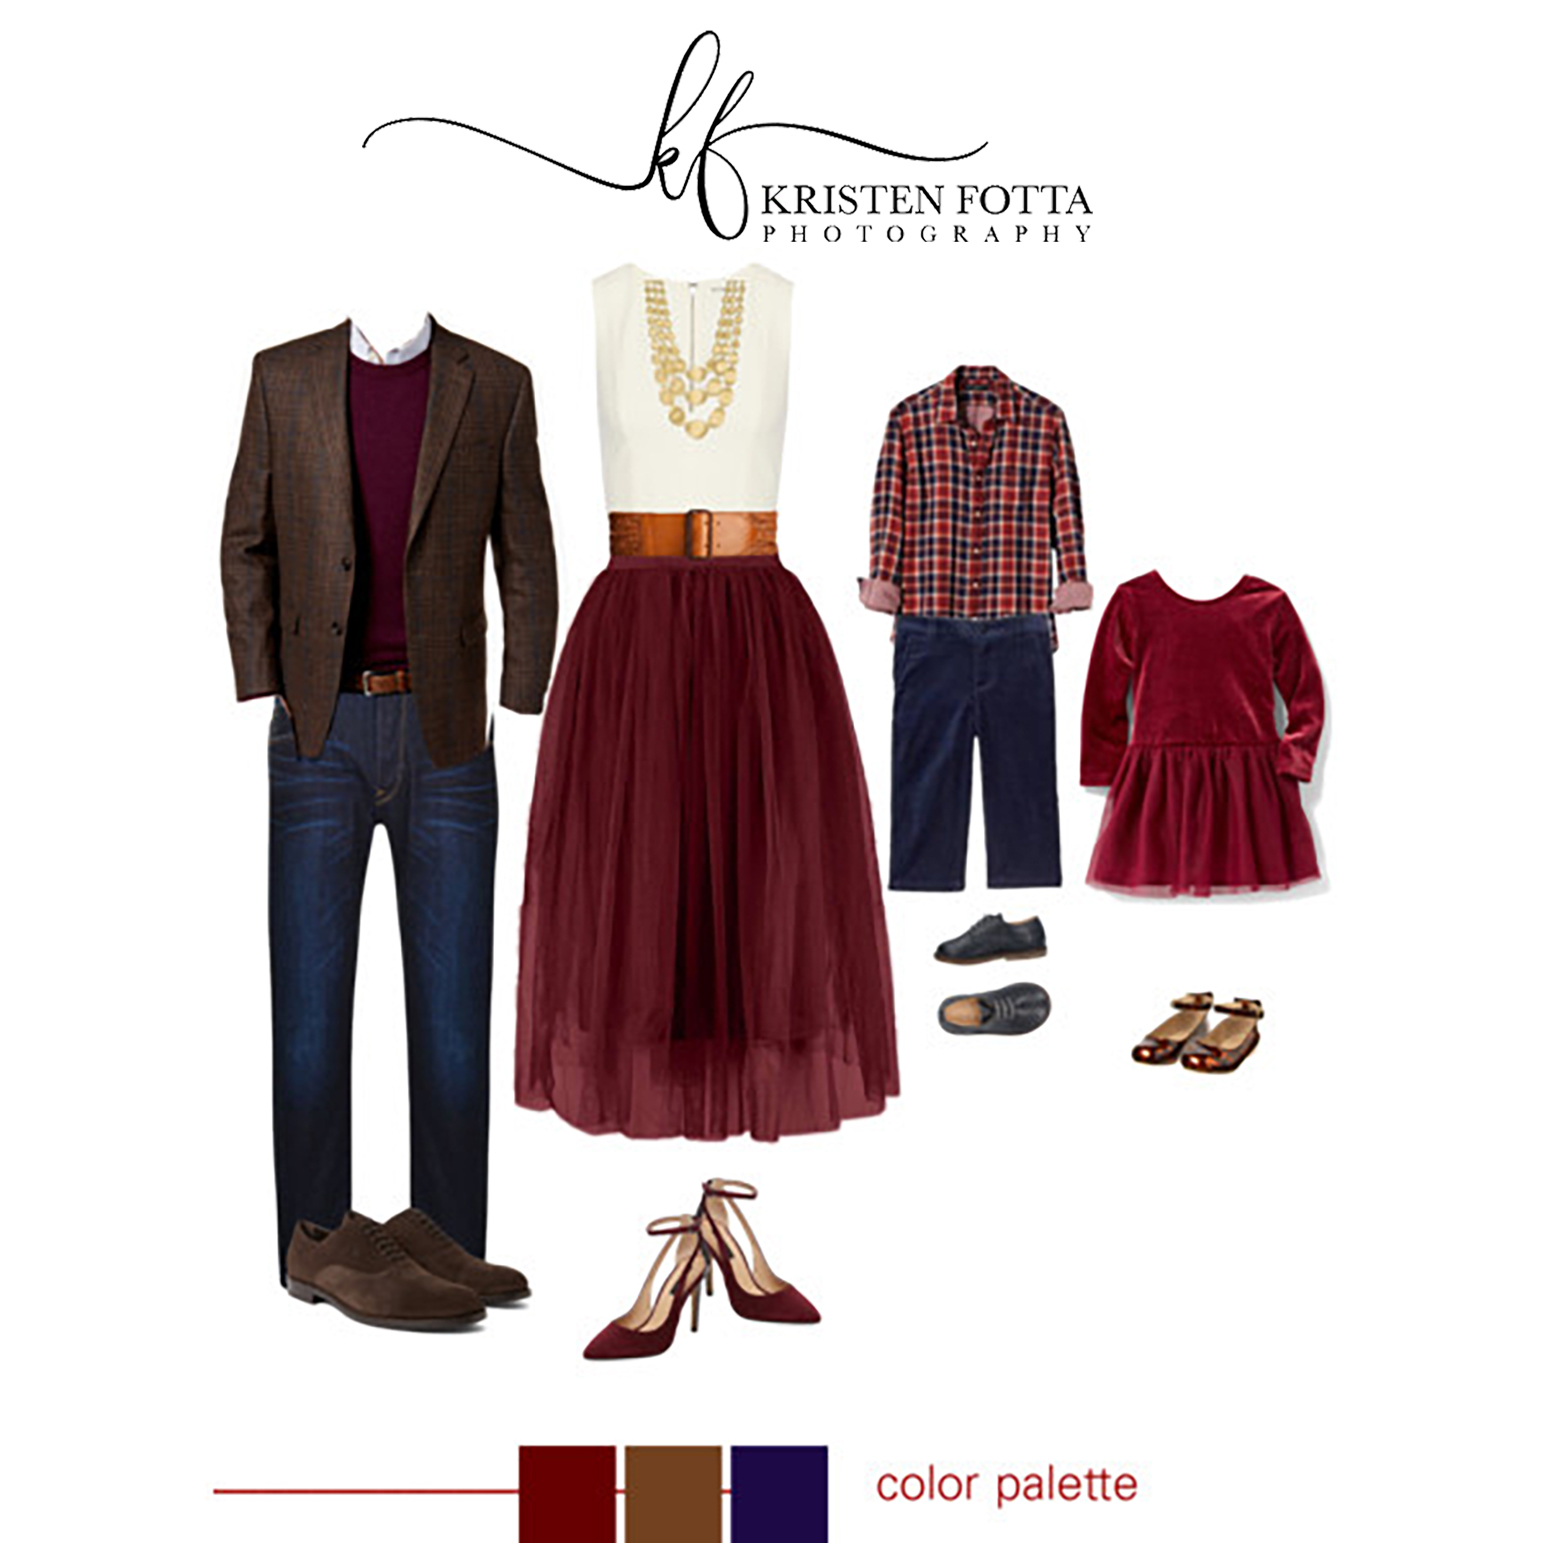 Christmas Family Outfit Ideas Inspiration For Your Family Holiday Pictures